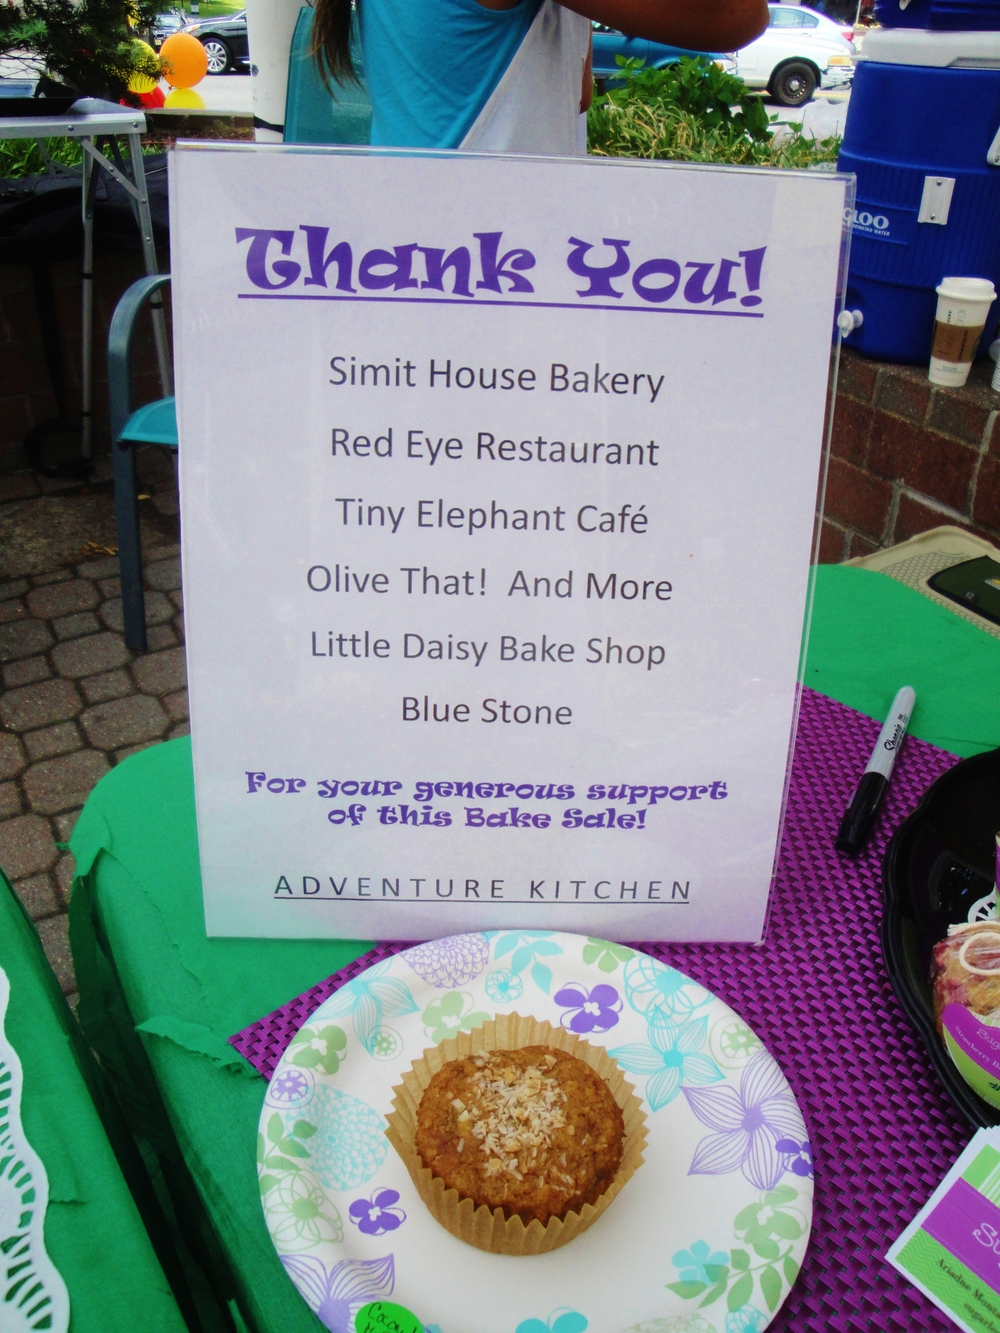 2015 - The local businesses and restaurants that provided treats for the Bake Sale.  Thank you!